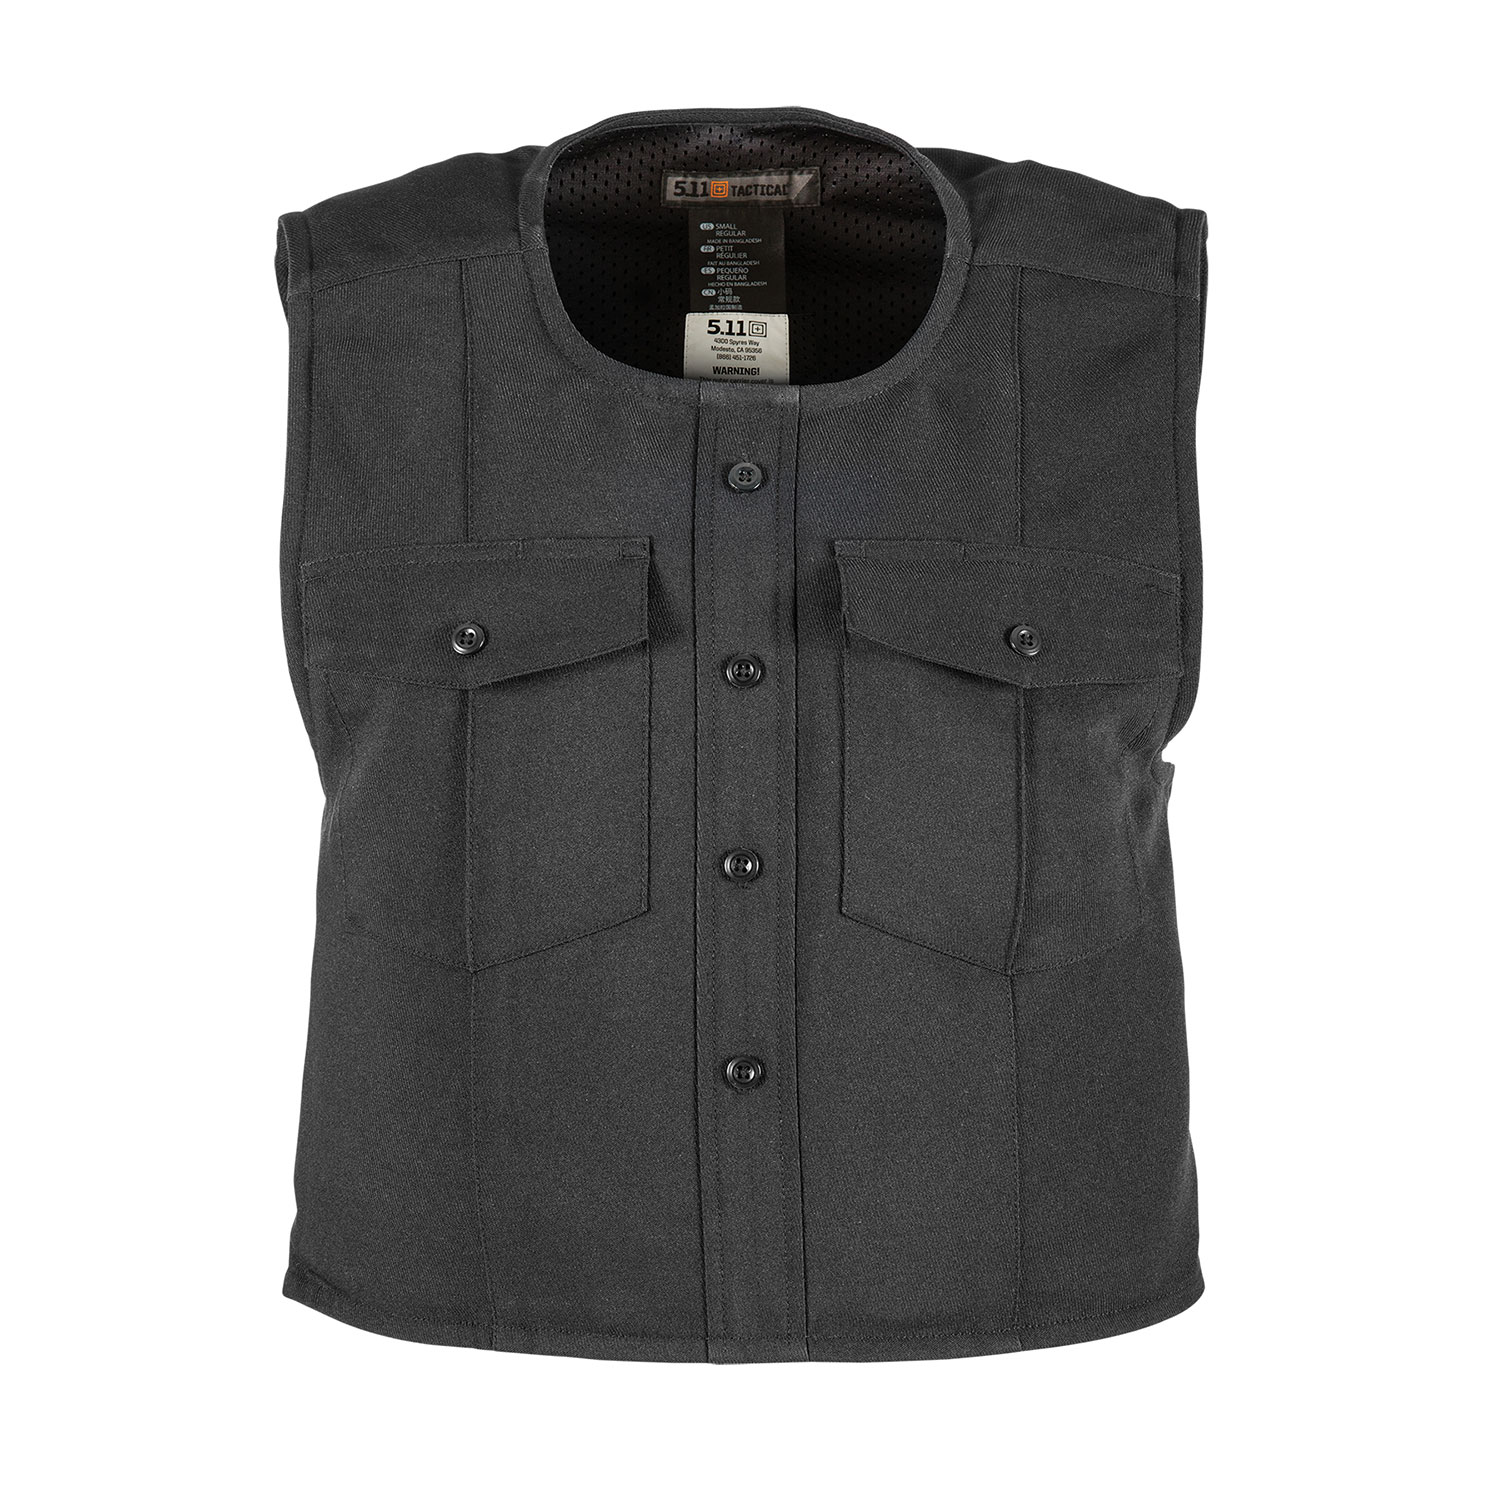 5.11 Tactical Women's Class A Uniform Outer Vest Carrier